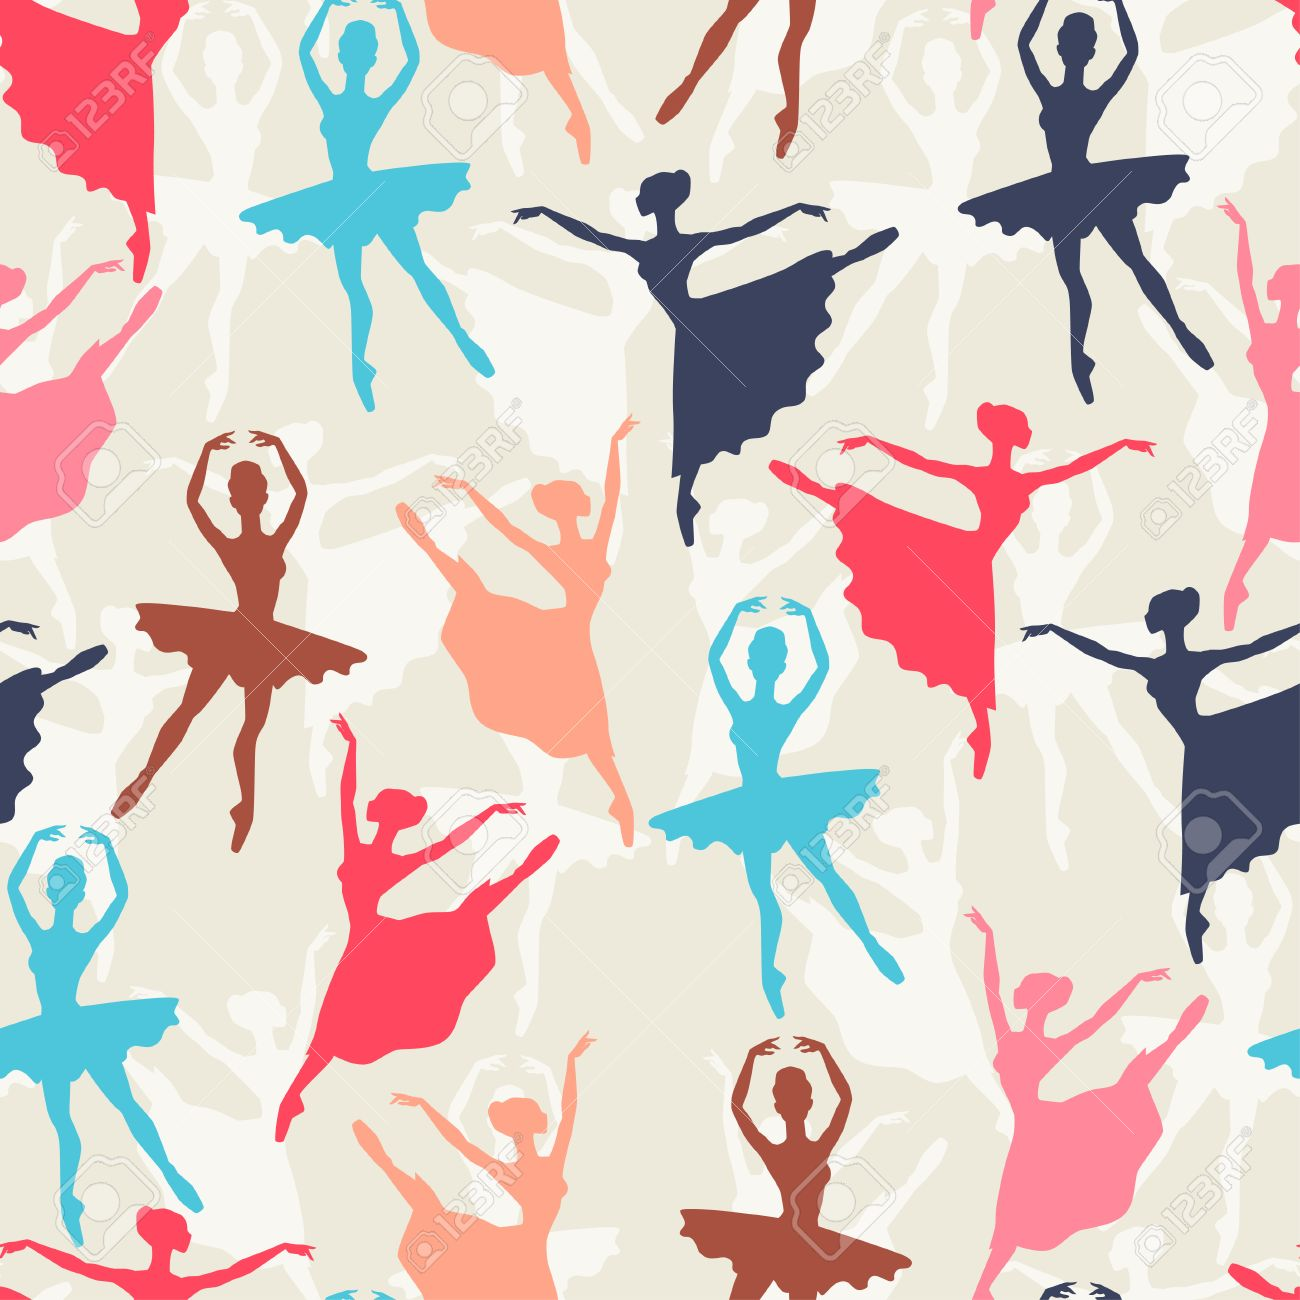 Seamless pattern of ballet dancers royalty free stock photography - Seamless Pattern Of Ballerinas Silhouettes In Dance Poses Stock Vector 40925034